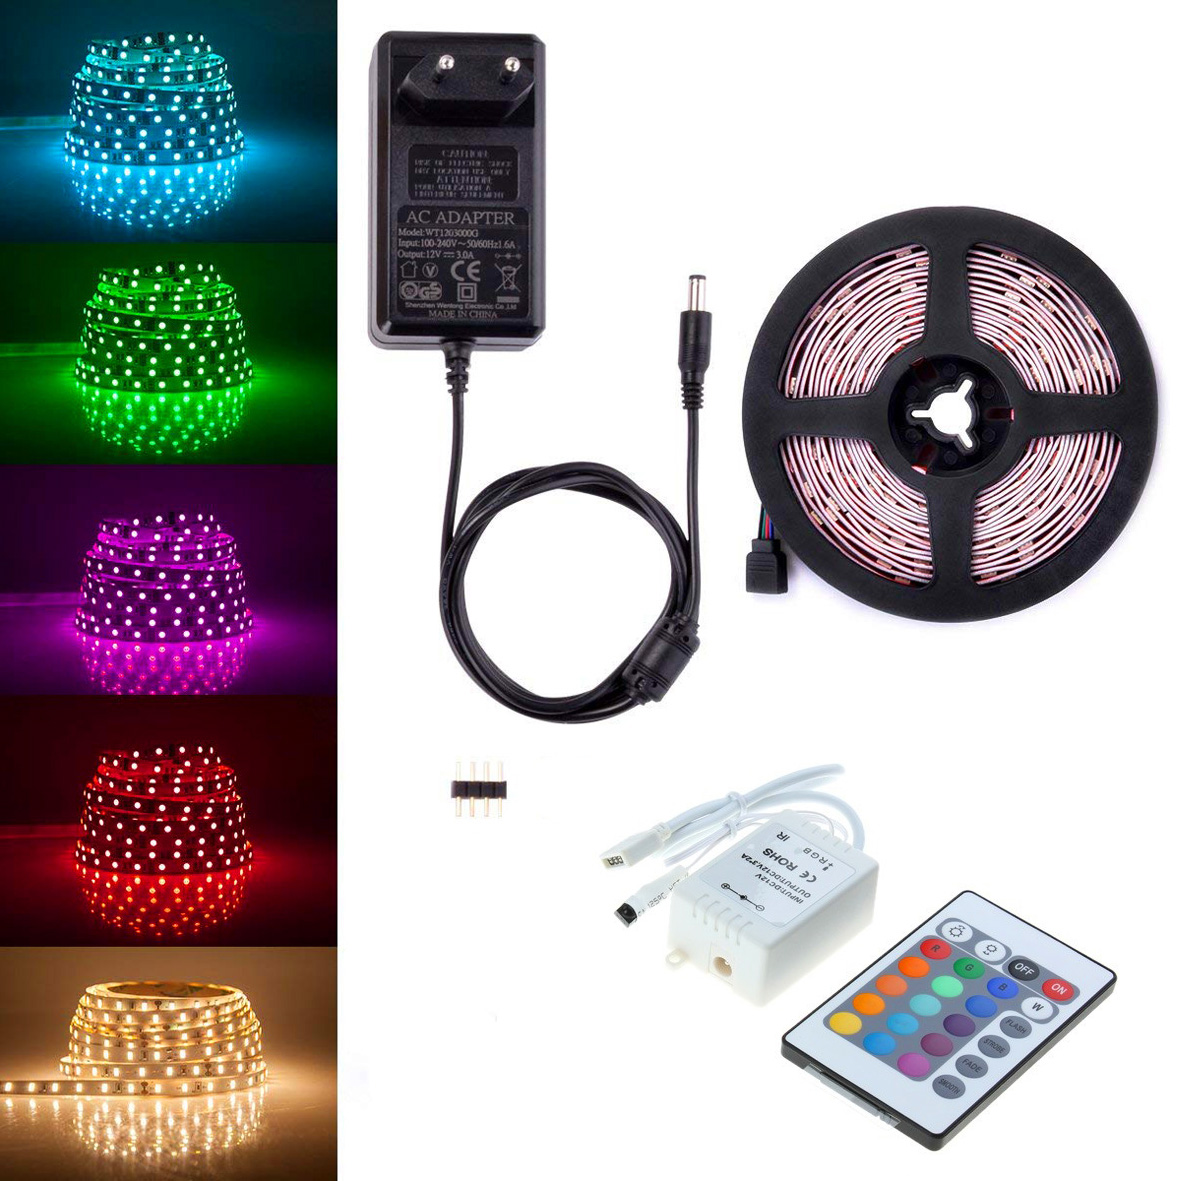 Striscia Led Rgb.Led Strip Rgb Strip 5metri Coil With Remote Controller The Internal And External